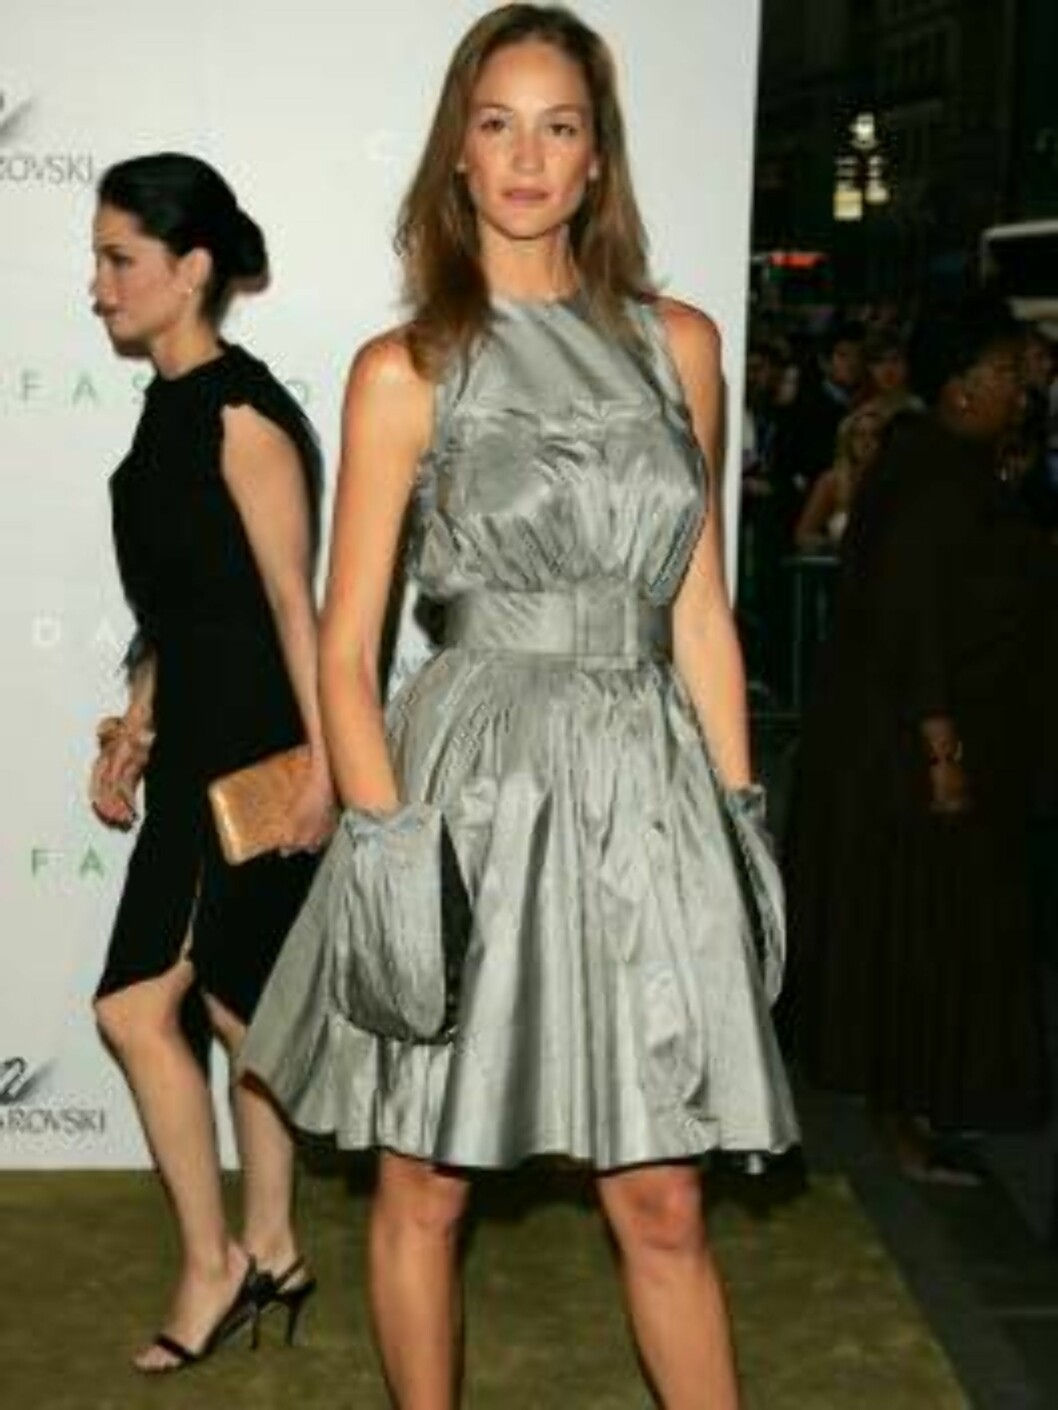 NEW YORK - JUNE 5:  Model Ines Rivero attends the 2006 CFDA Awards at the New York Public Library on June 5, 2006 in New York City.  (Photo by Peter Kramer/Getty Images) *** Local Caption *** Name  * SPECIAL INSTRUCTIONS:  * *OBJECT NAME: 71124720KV313_20 Foto: All Over Press